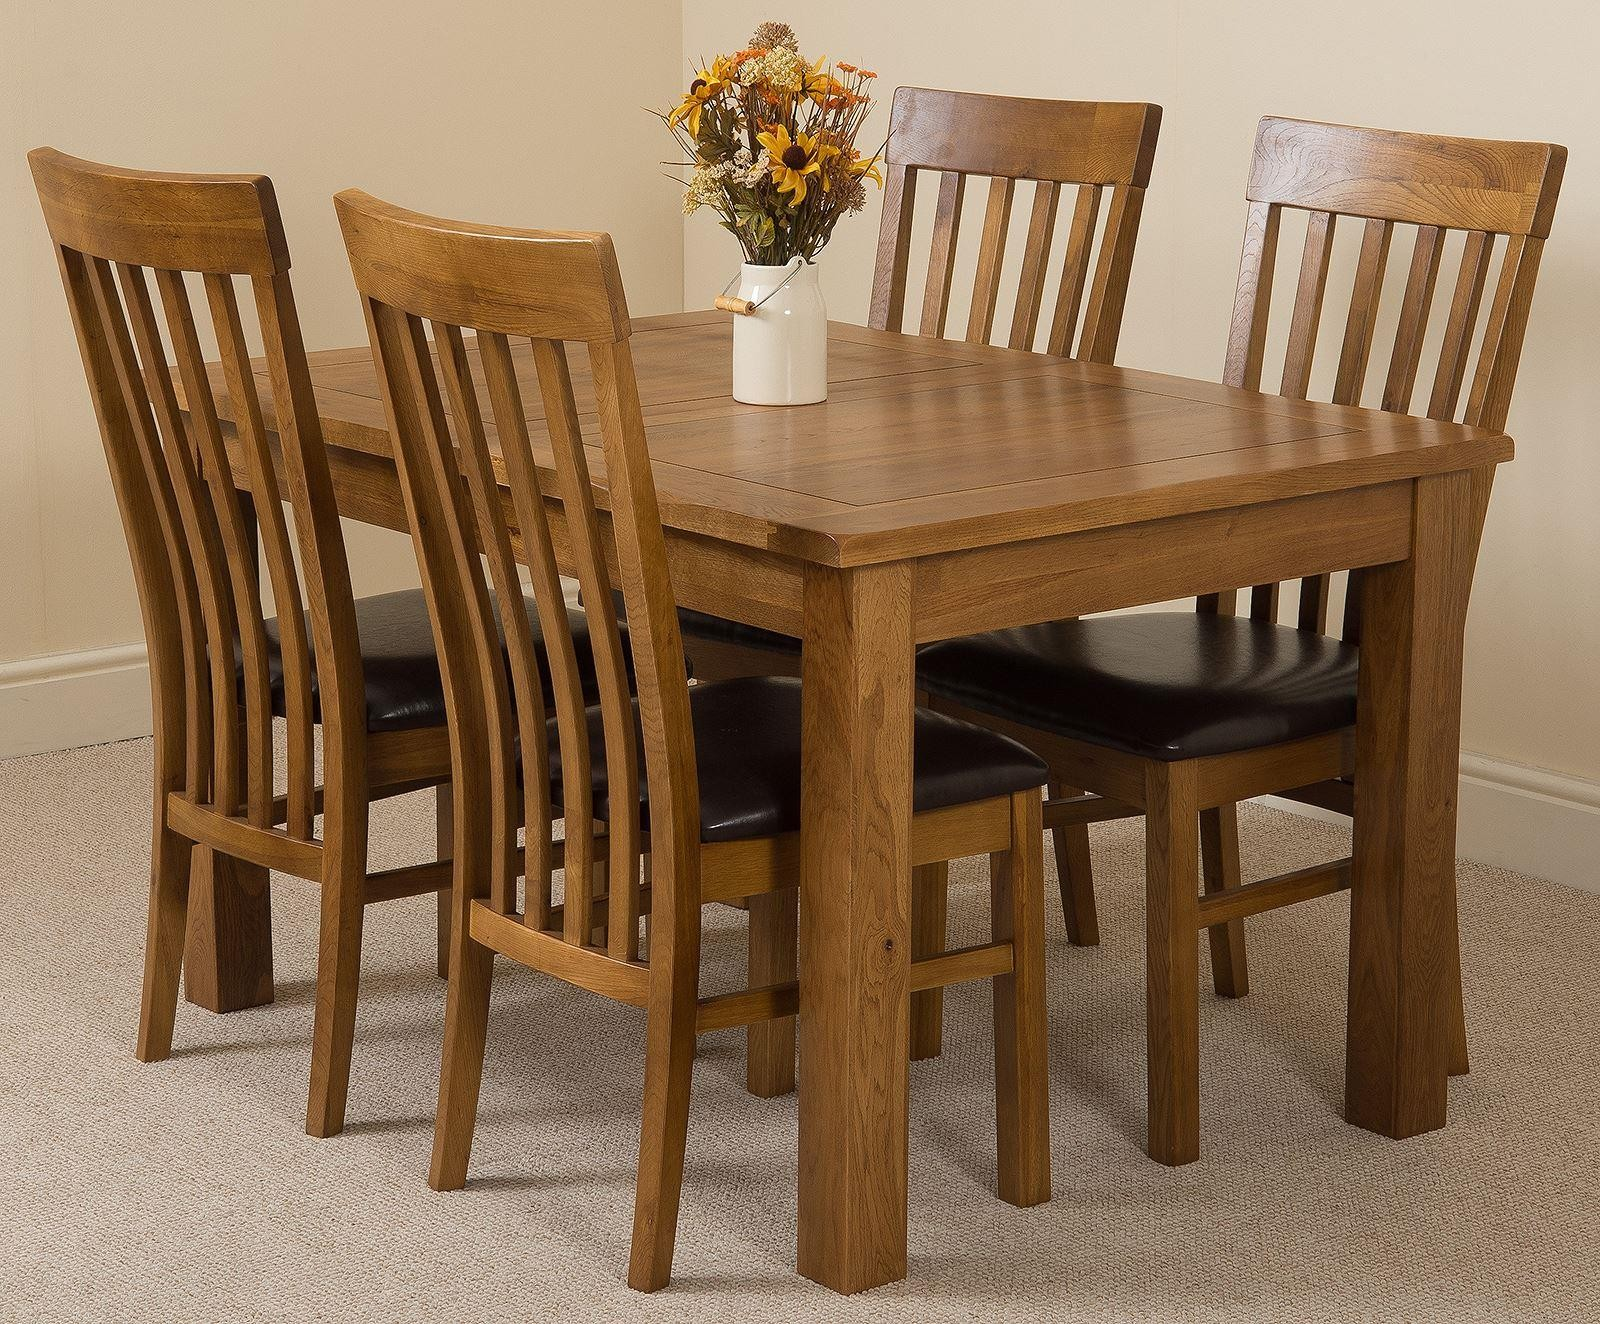 Cotswold Rustic Solid Oak 132cm-198cm Extending Farmhouse Dining Table with 4 Harvard Dining Chairs [Rustic Oak and Brown Leather]